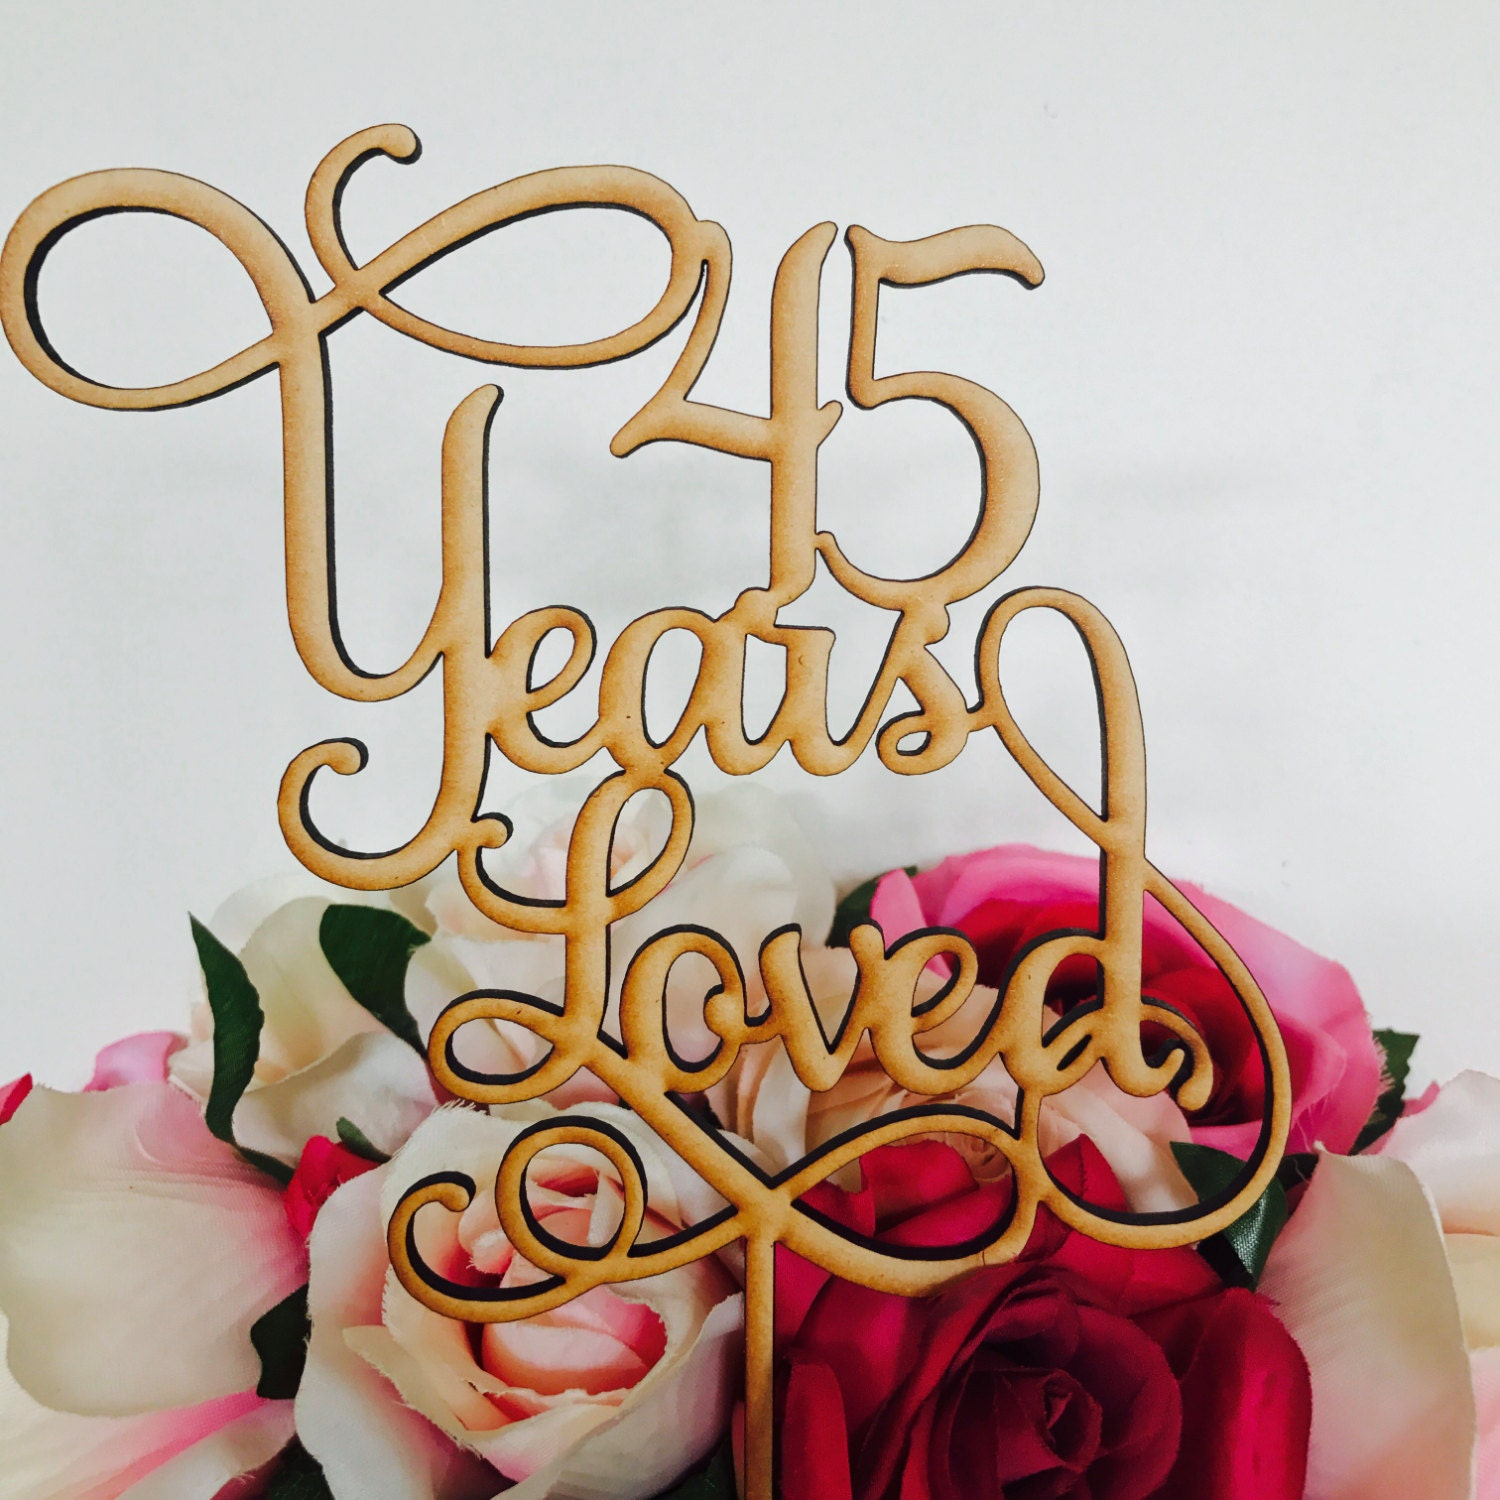 45 Years Loved Cake Topper Anniversary Decoration Decorating Wedding 45th